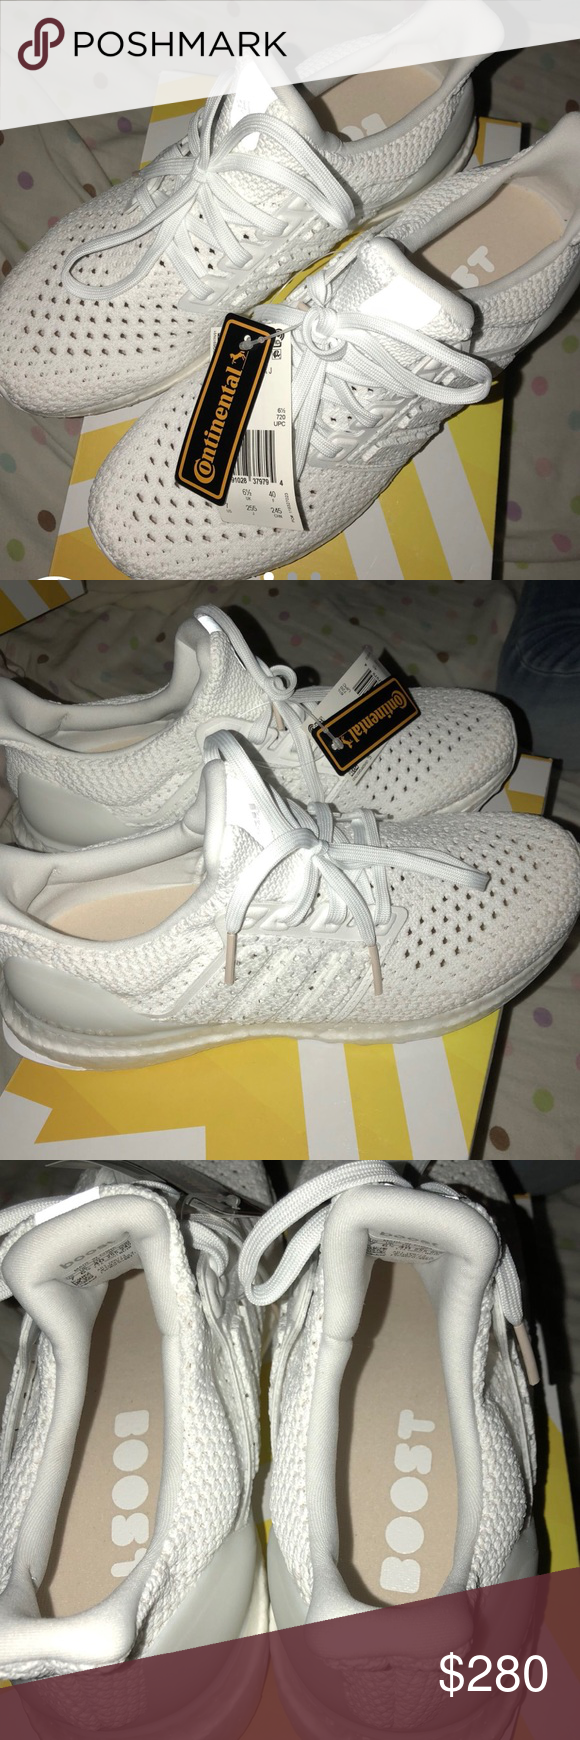 f877674a0e09 Adidas ultraBOOST clima j Size 7 kids ( fits women s 8.5 or 7 men ) Never  worn with tags adidas Shoes Athletic Shoes